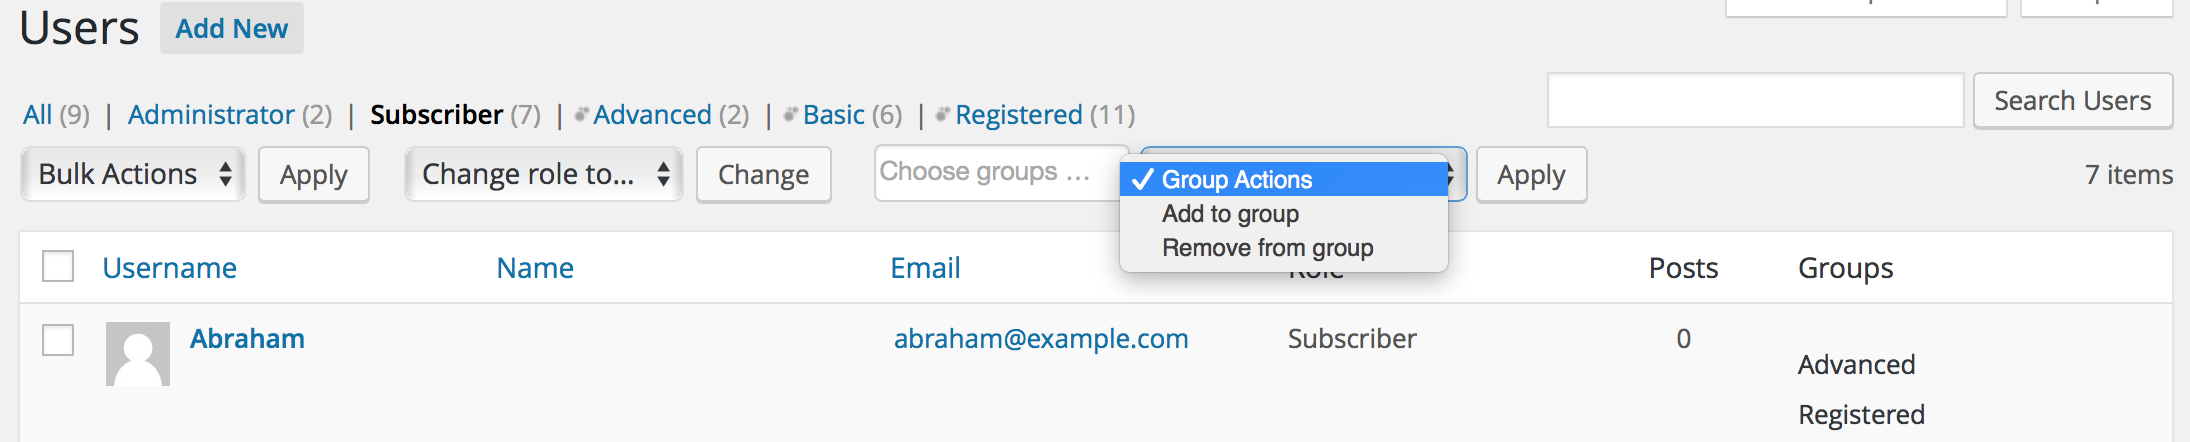 users-group-actions